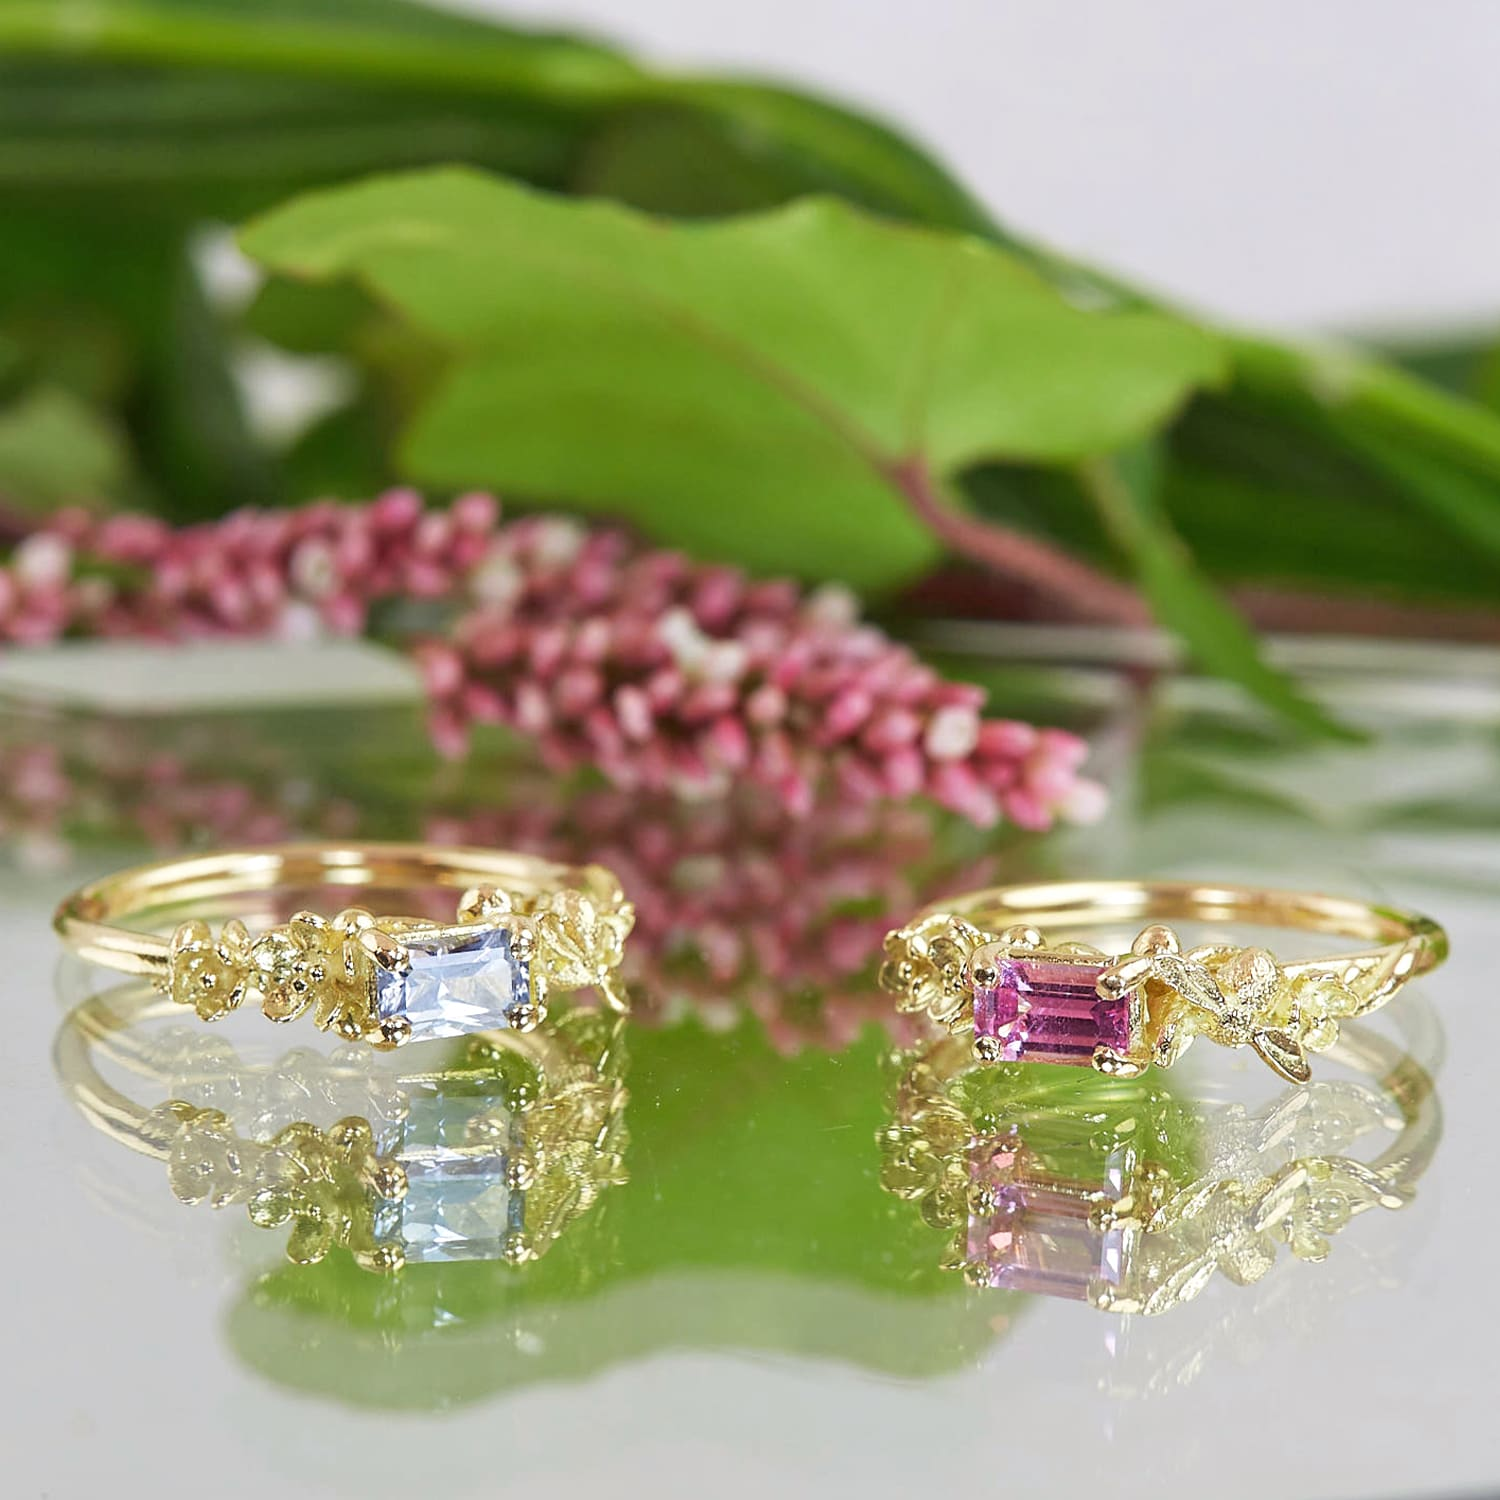 limited edition unique 18ct fine gold rings with emerald cut sapphire gemstones and bee details